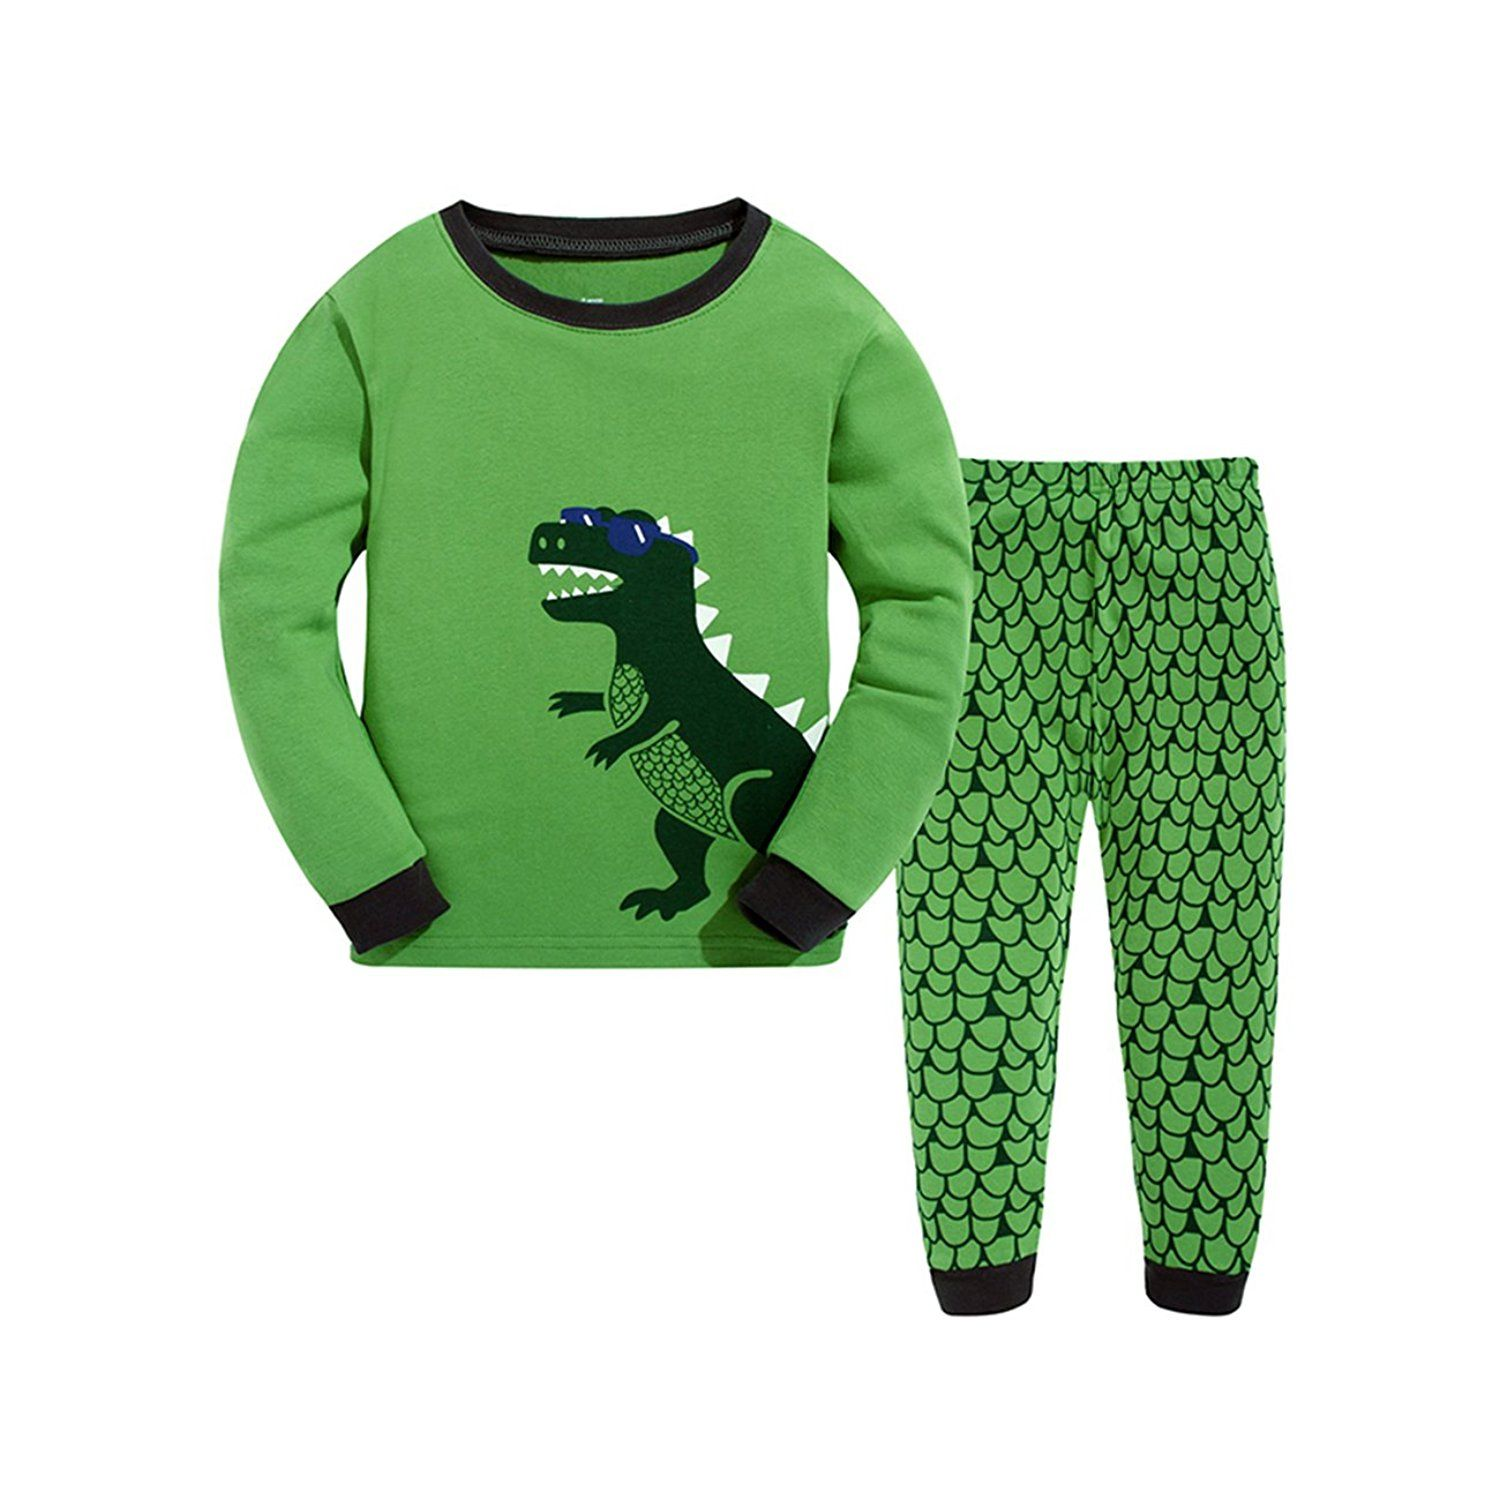 little hand kids boys pyjamas suit dinosaur cotton nightwear pjs little hand kids boys pyjamas suit dinosaur cotton nightwear pjs size 1 7 years